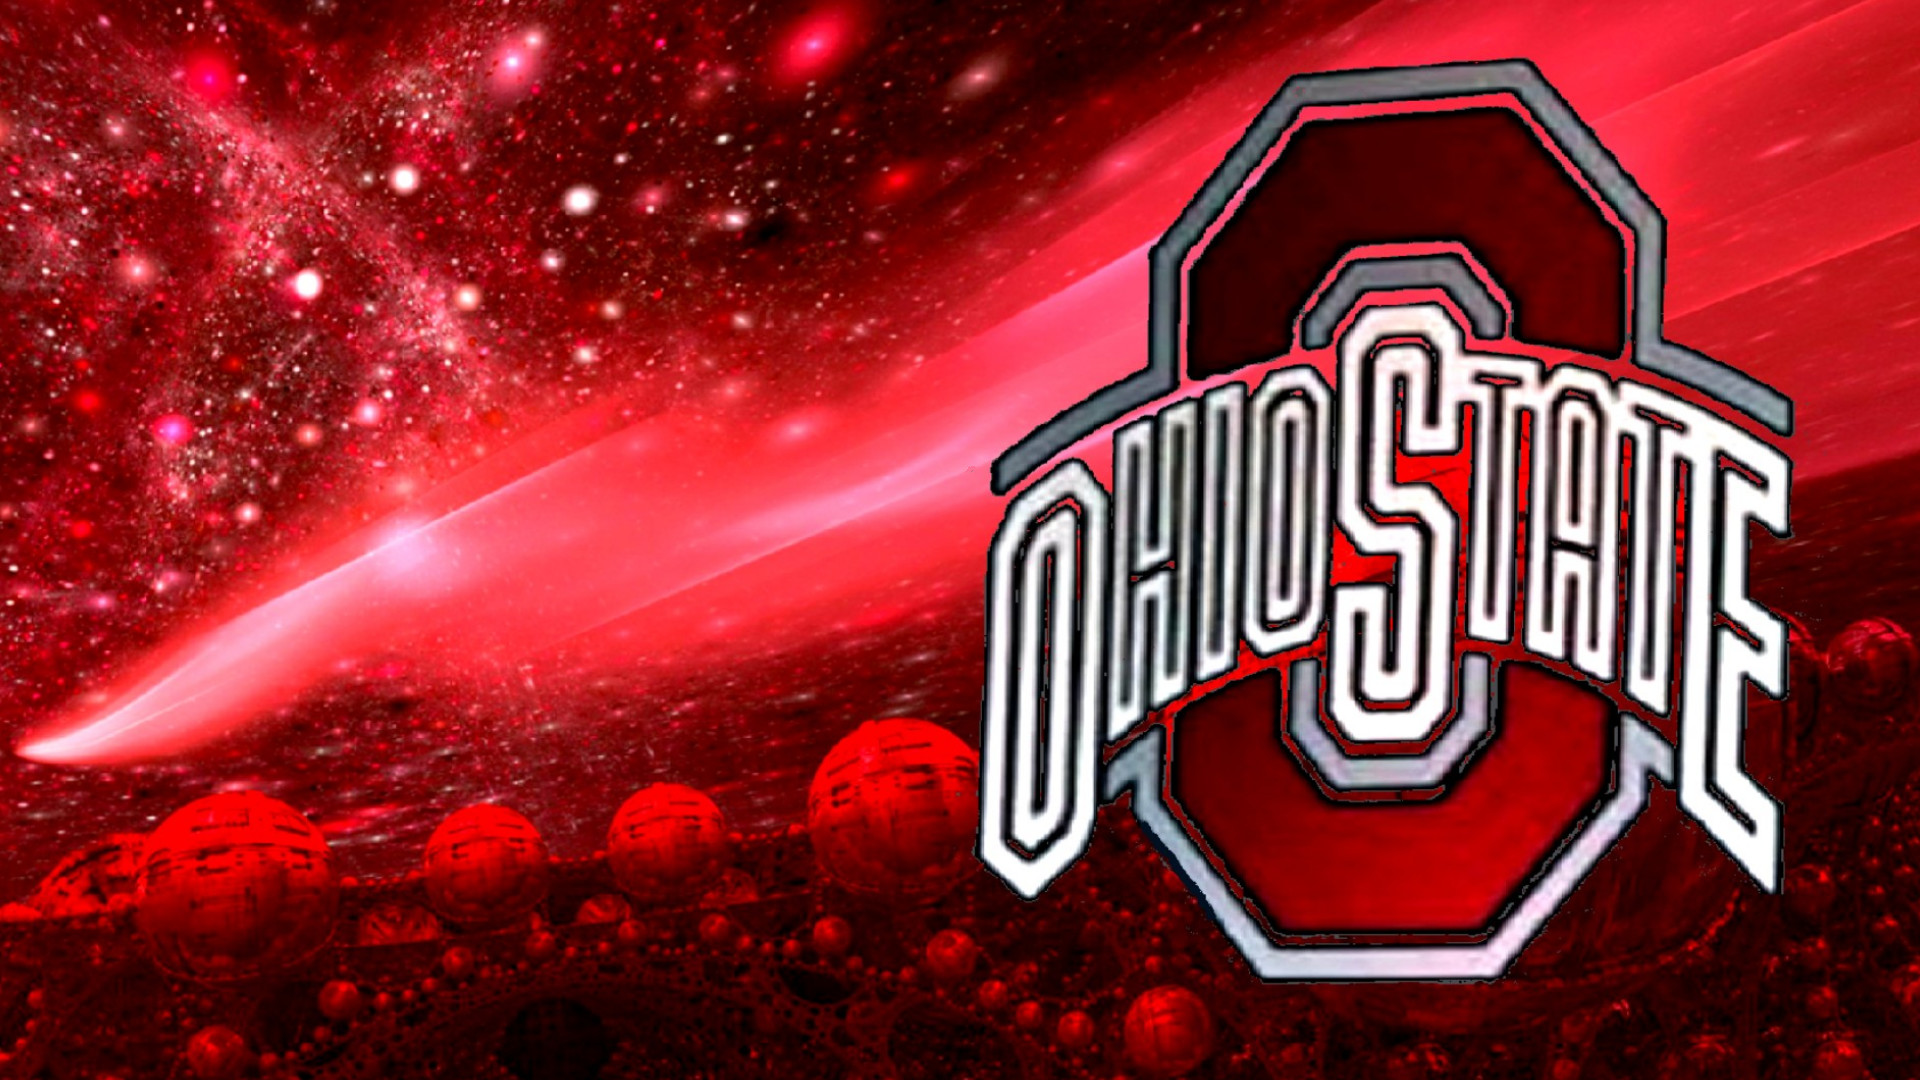 … backgrounds for ohio state wallpaper backgrounds www …